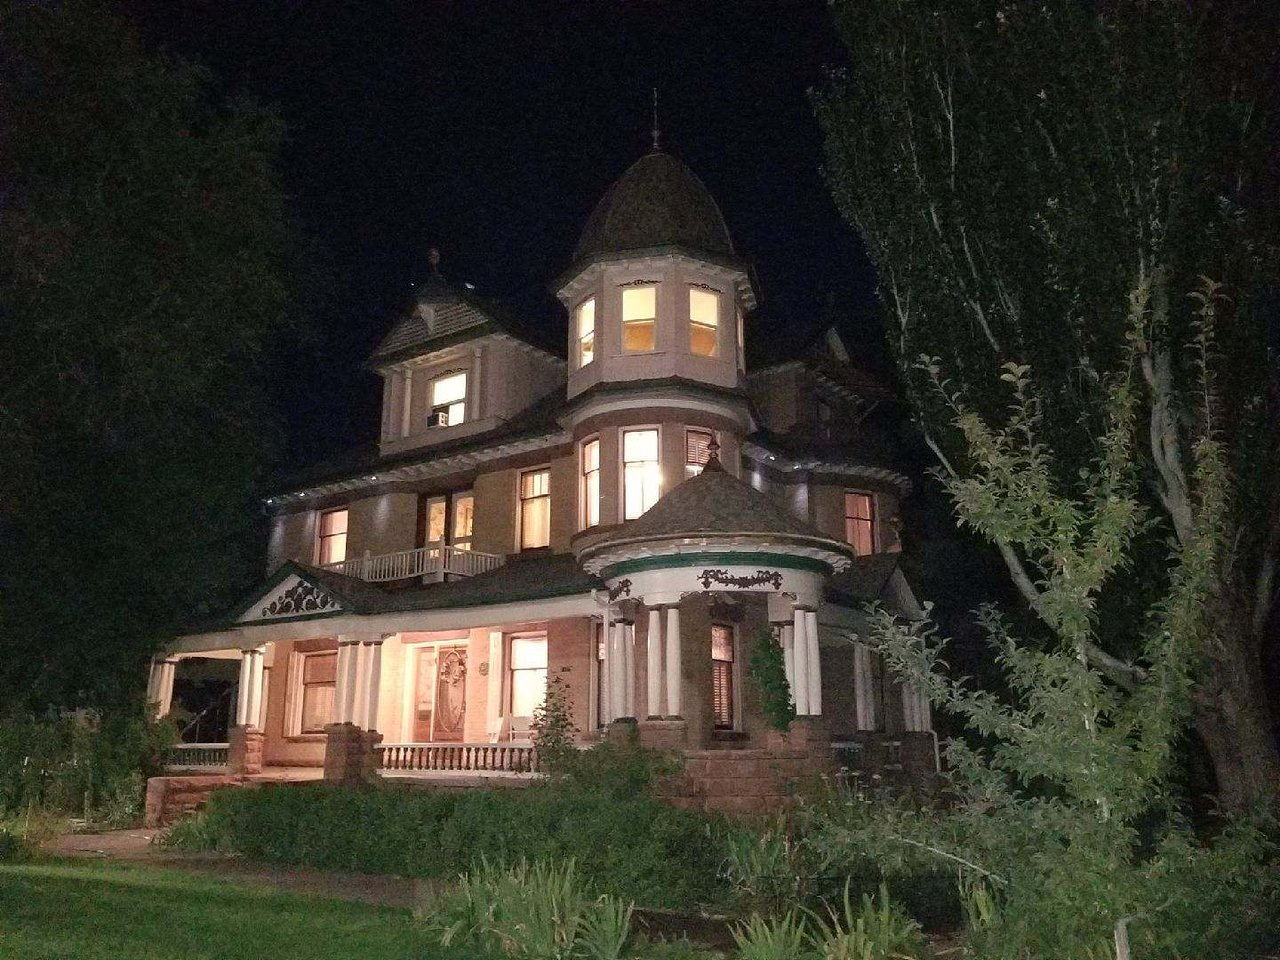 whitmore mansion - updated 2019 prices, b&b reviews, and